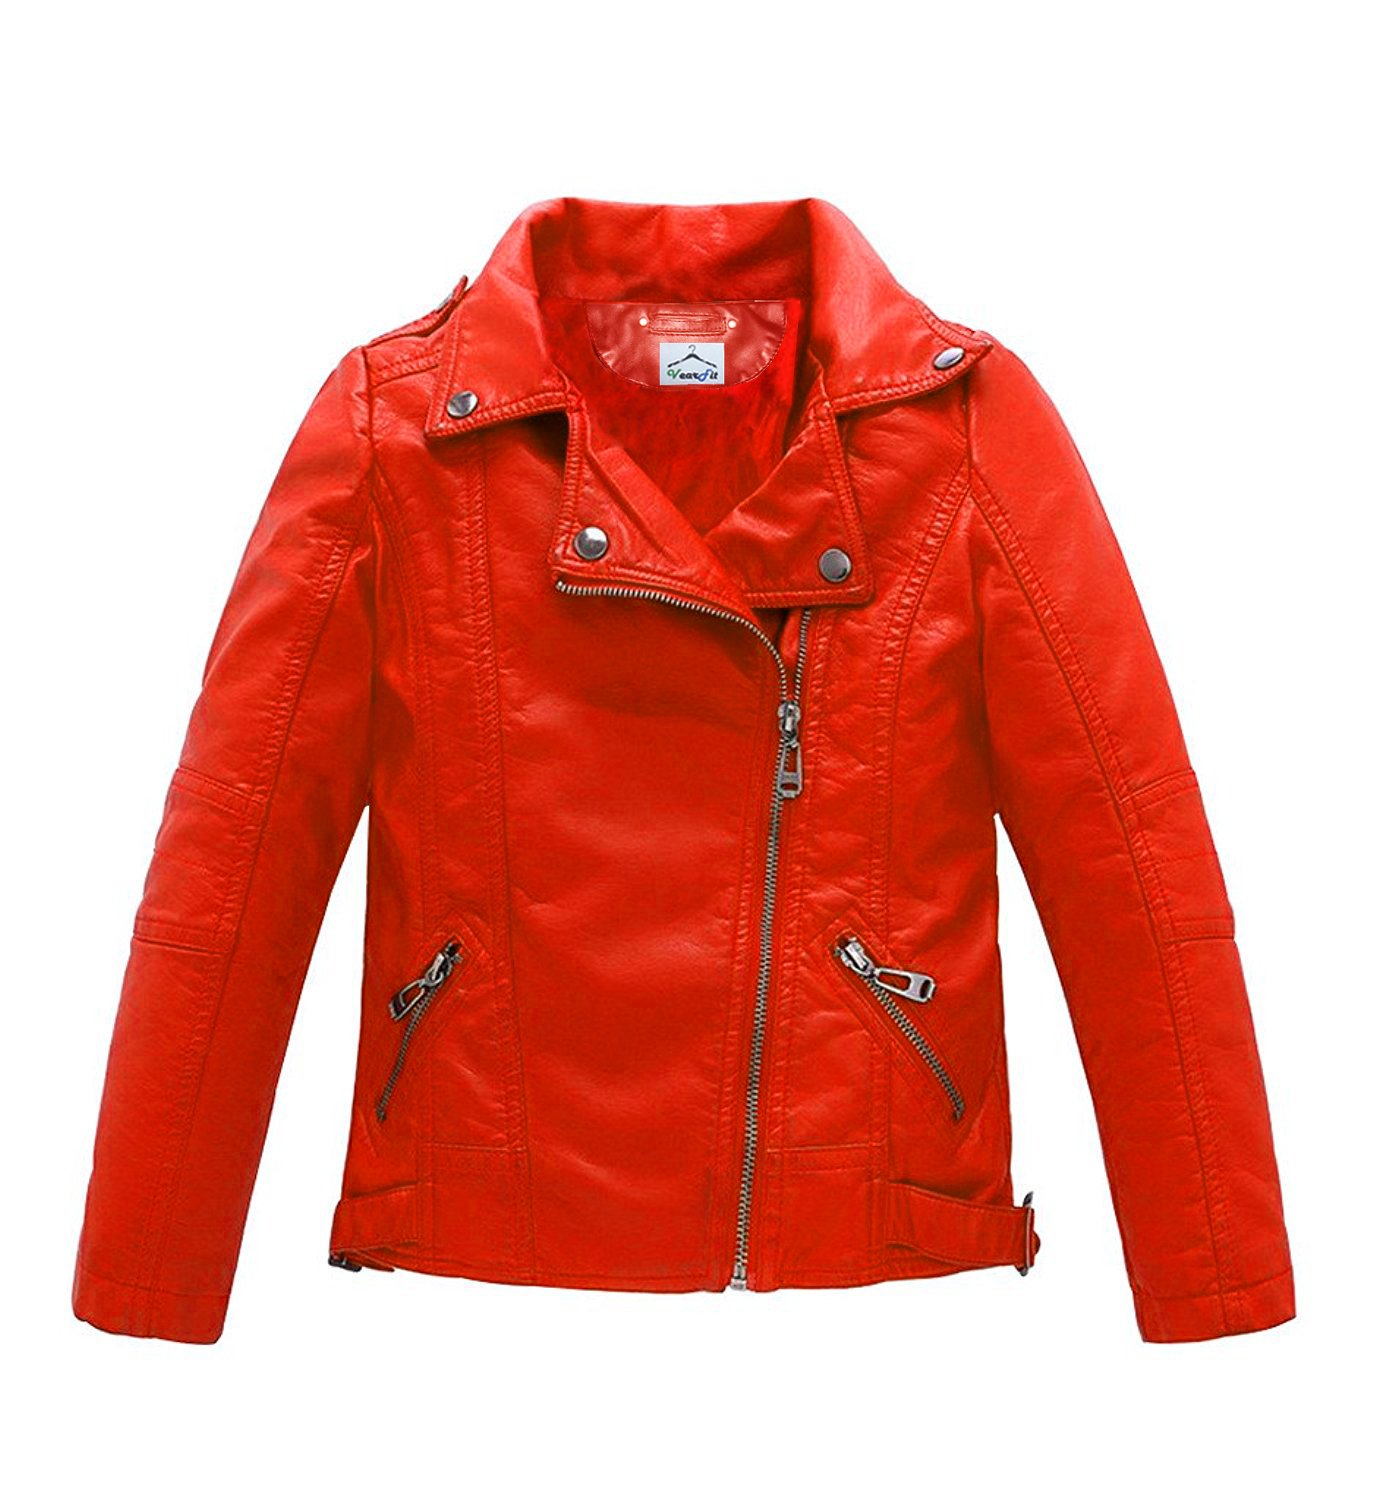 VearFit Trango Red Girls Kids Todller Real Leather Jacket, 1-2-Year, Red